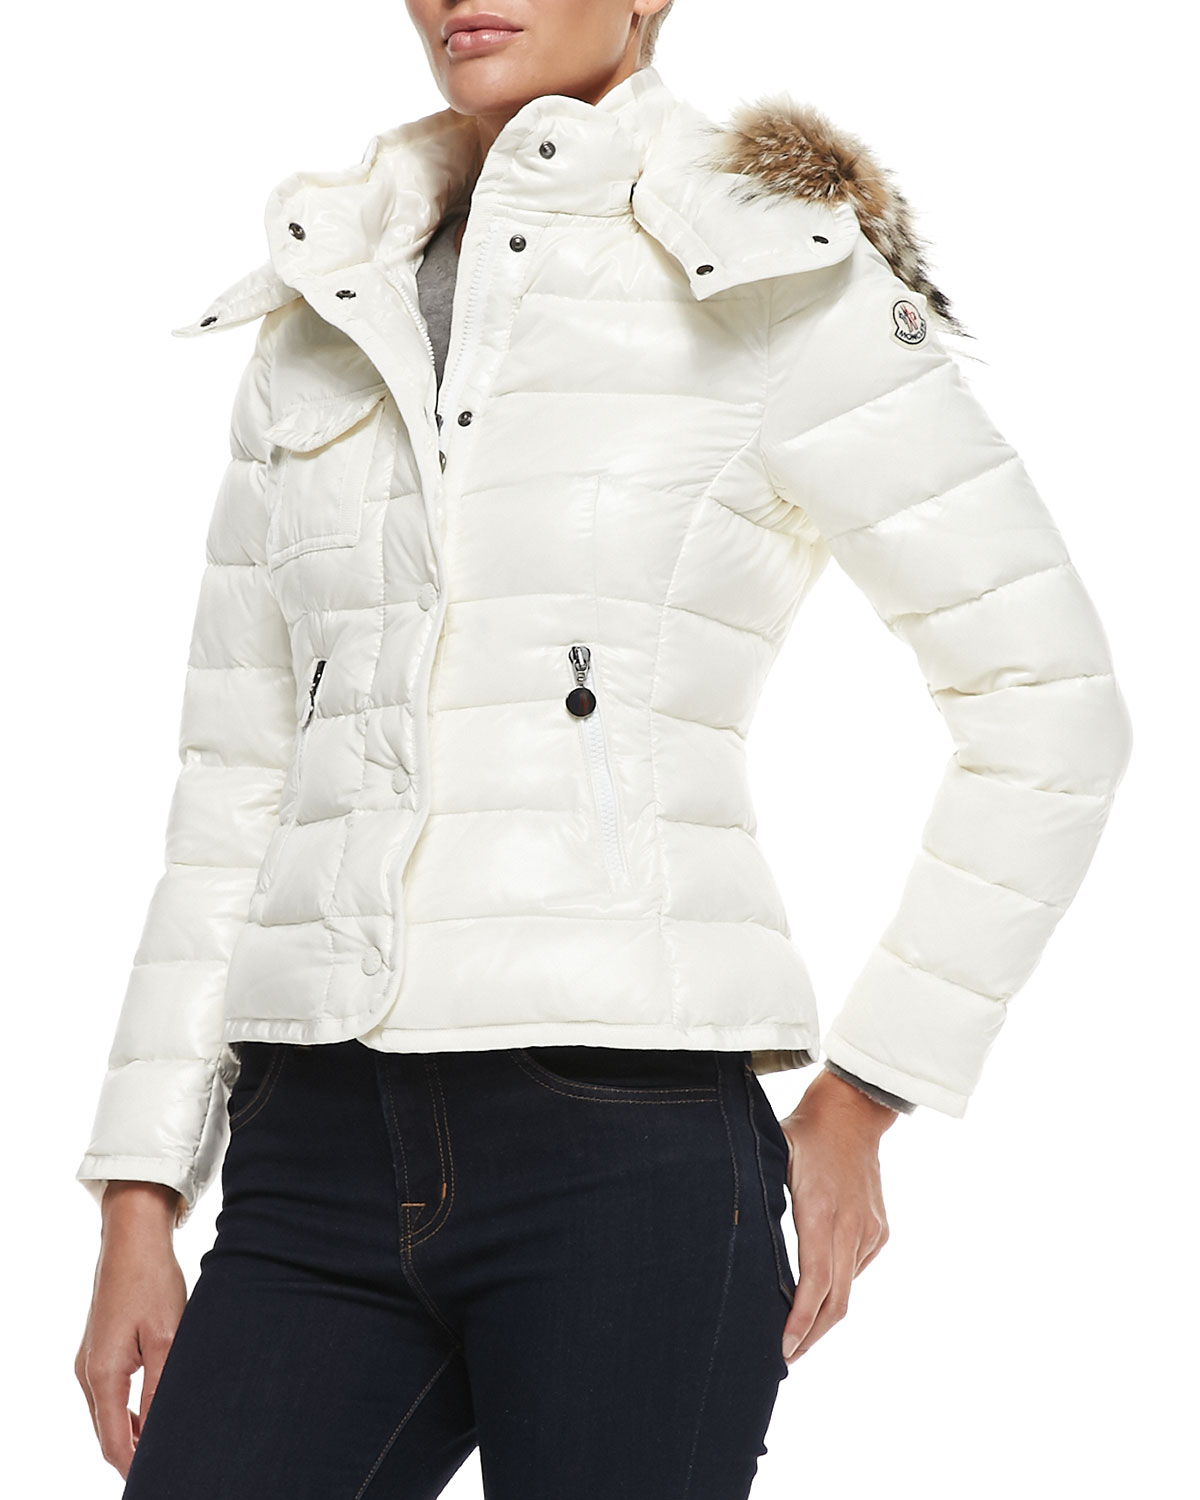 Lyst - Moncler Puffer Jacket With Fur-Trim Hood In White-9800